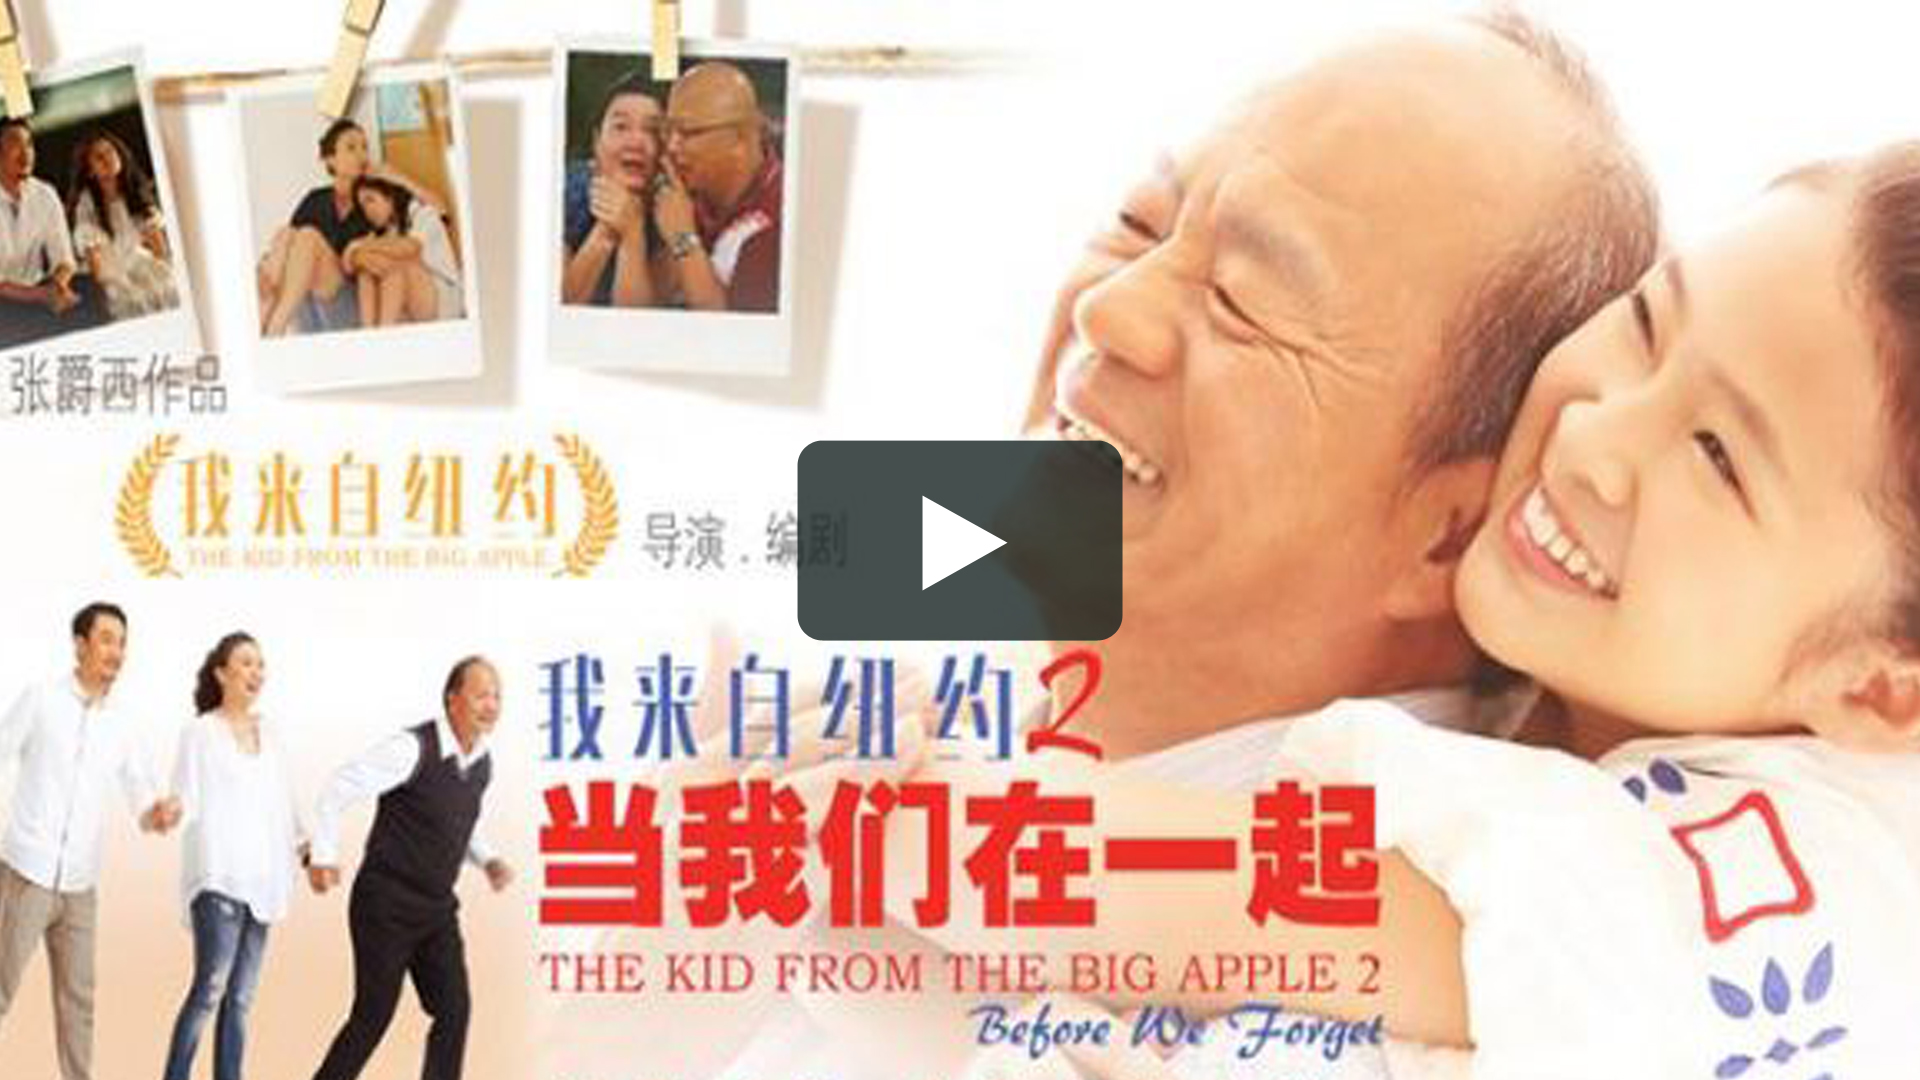 我來自紐約2:當我們同在一起 - The Kid from the Big Apple: Before We Forget